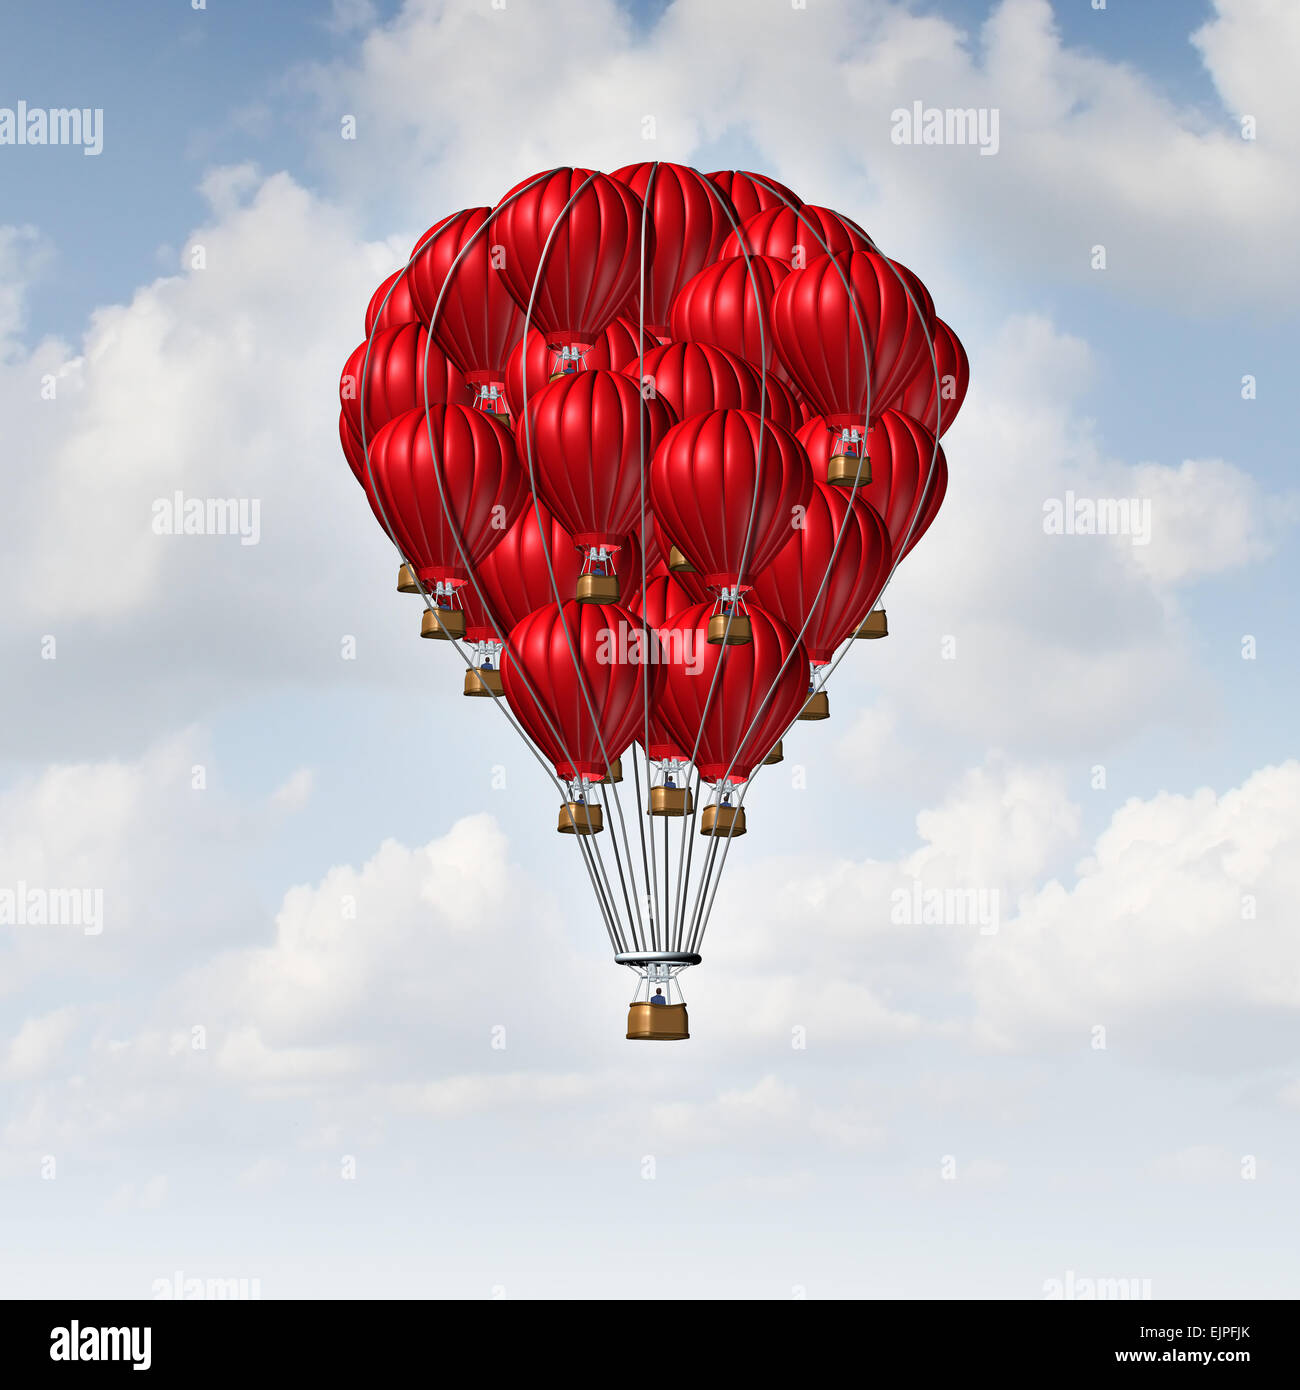 Group concept as a team of red hot air balloons joined together as a symbol for teamwork unity and collaboration - Stock Image